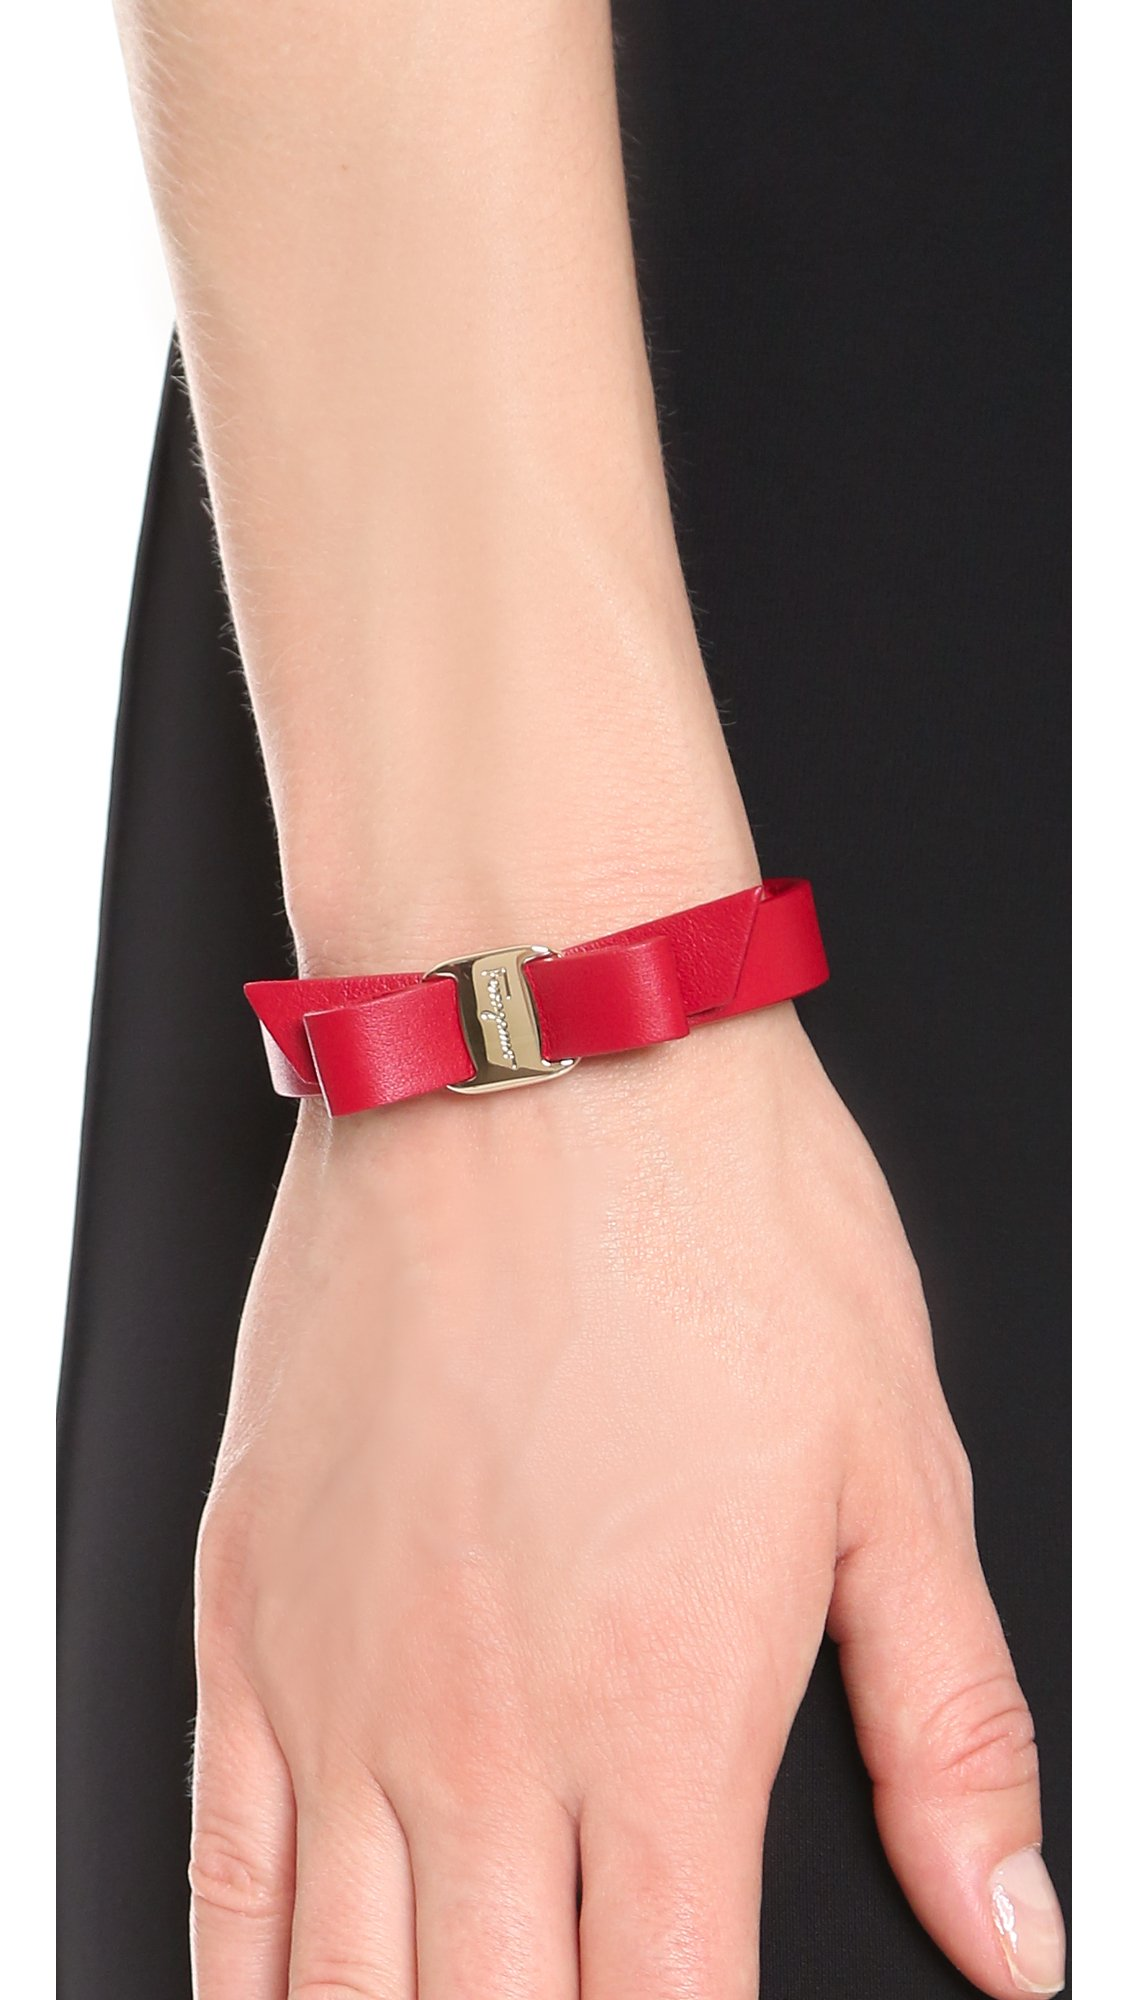 Ferragamo Vara Bow Single Wrap Bracelet in Red - Lyst